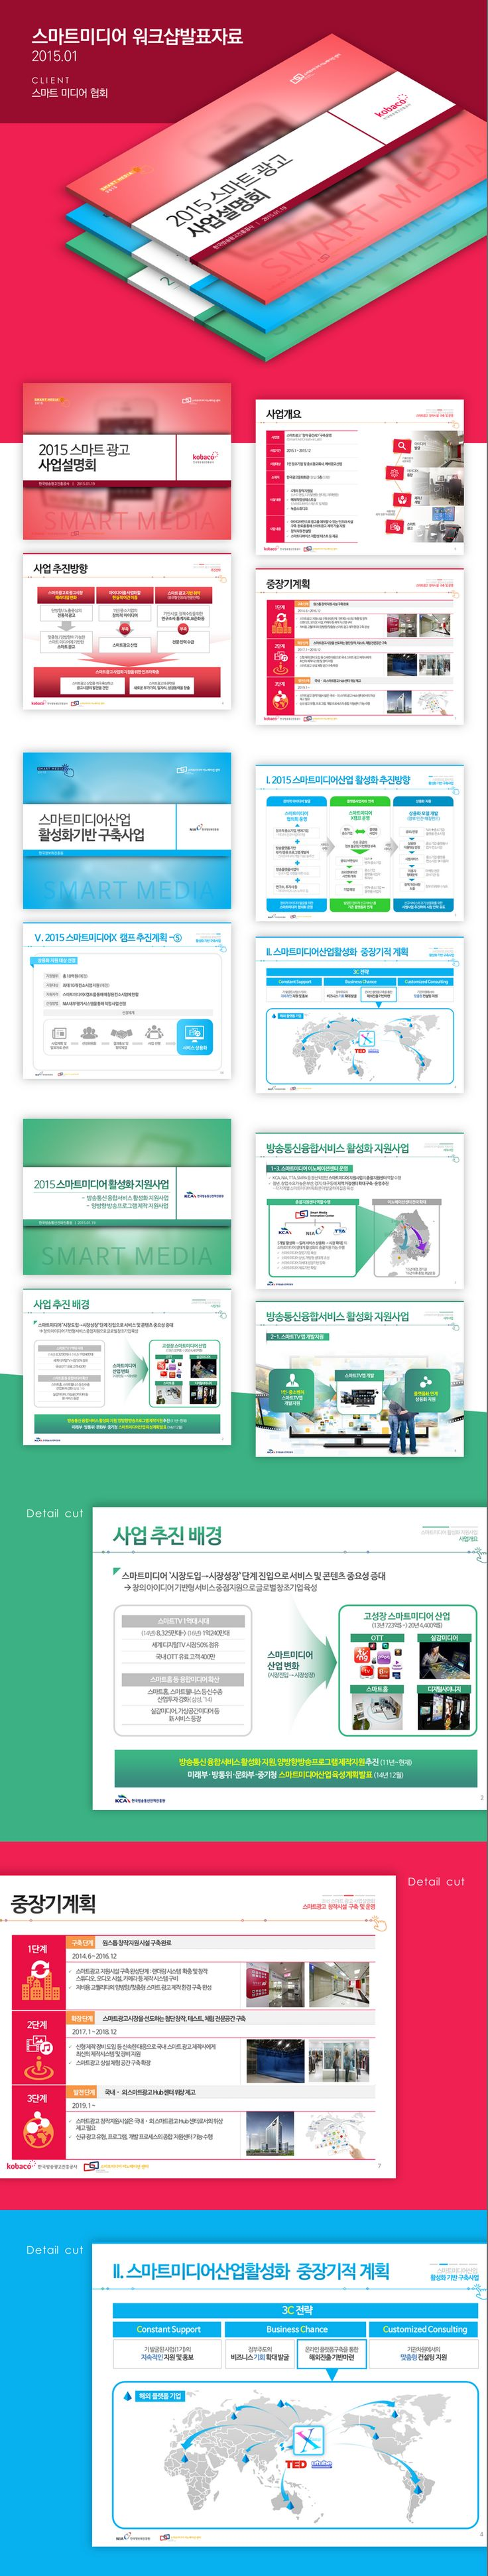 Presentation graphics for Smartmedia by ptwiz Client : 스마트미디어 협회 회원사